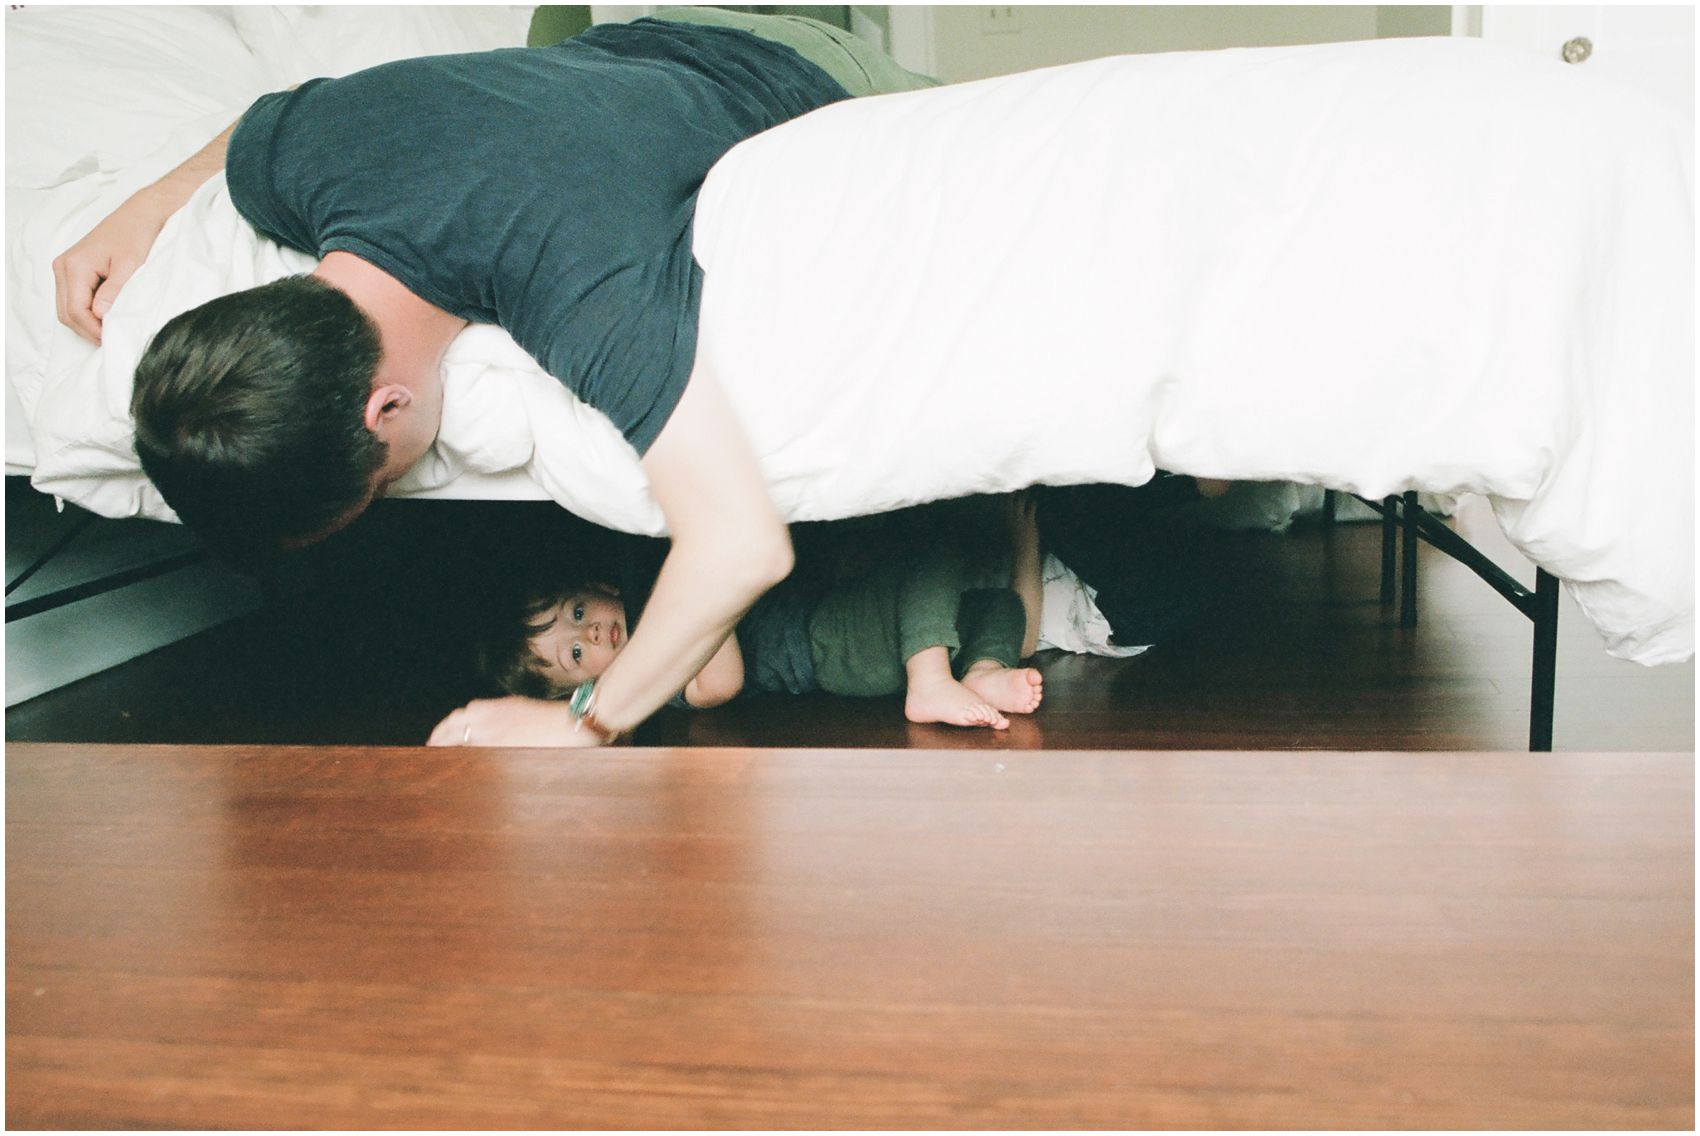 dad is peeking at his little son hiding under the bed